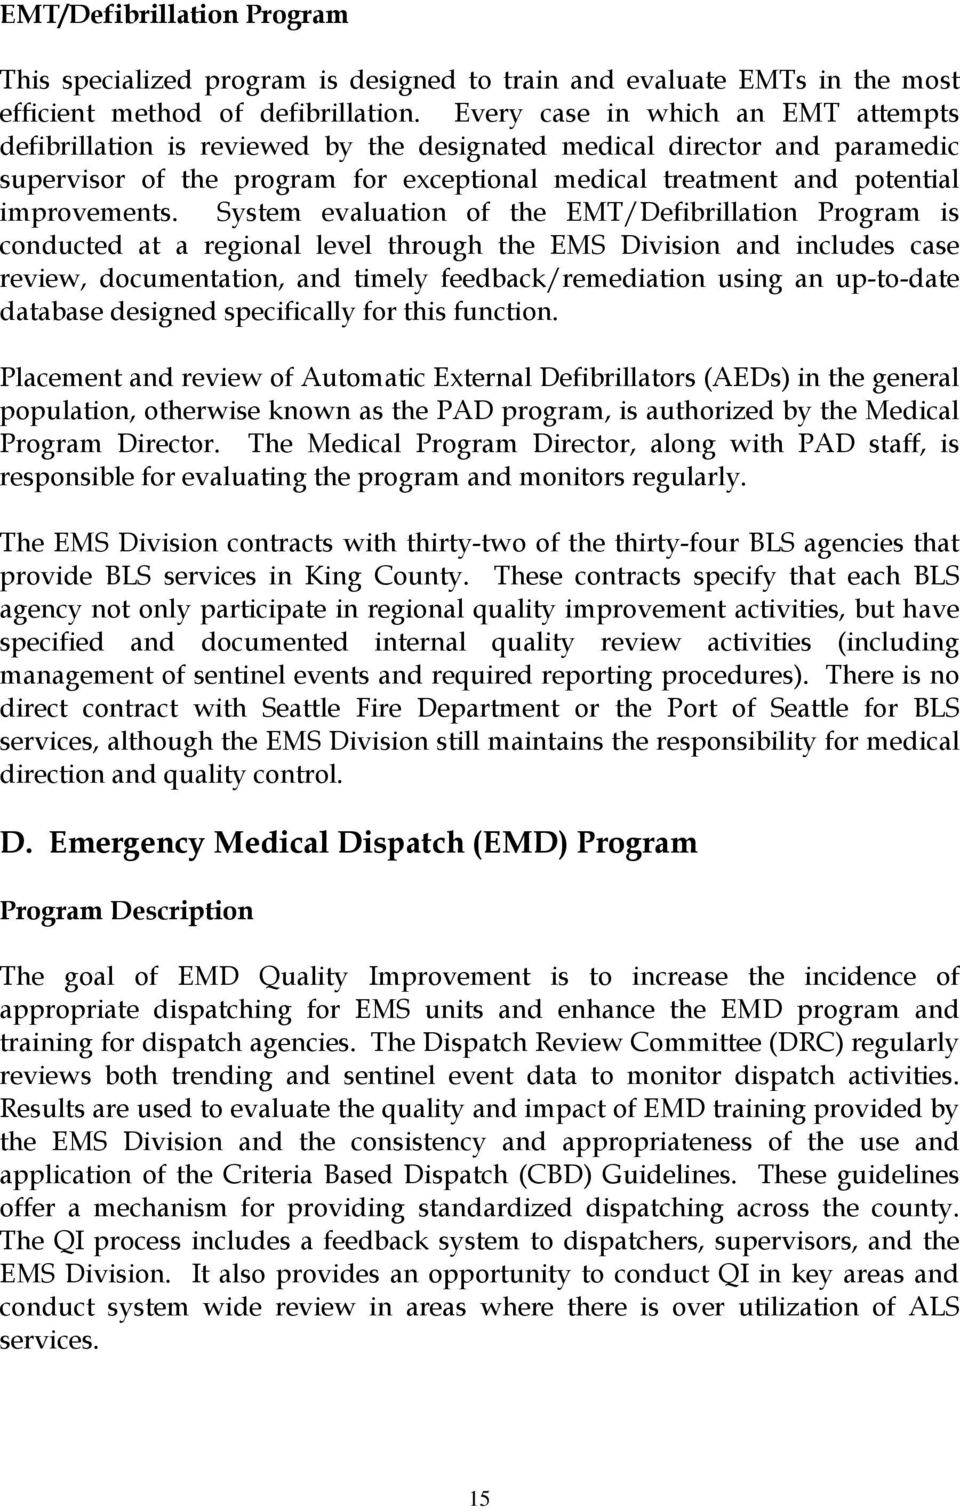 System evaluation of the EMT/Defibrillation Program is conducted at a regional level through the EMS Division and includes case review, documentation, and timely feedback/remediation using an